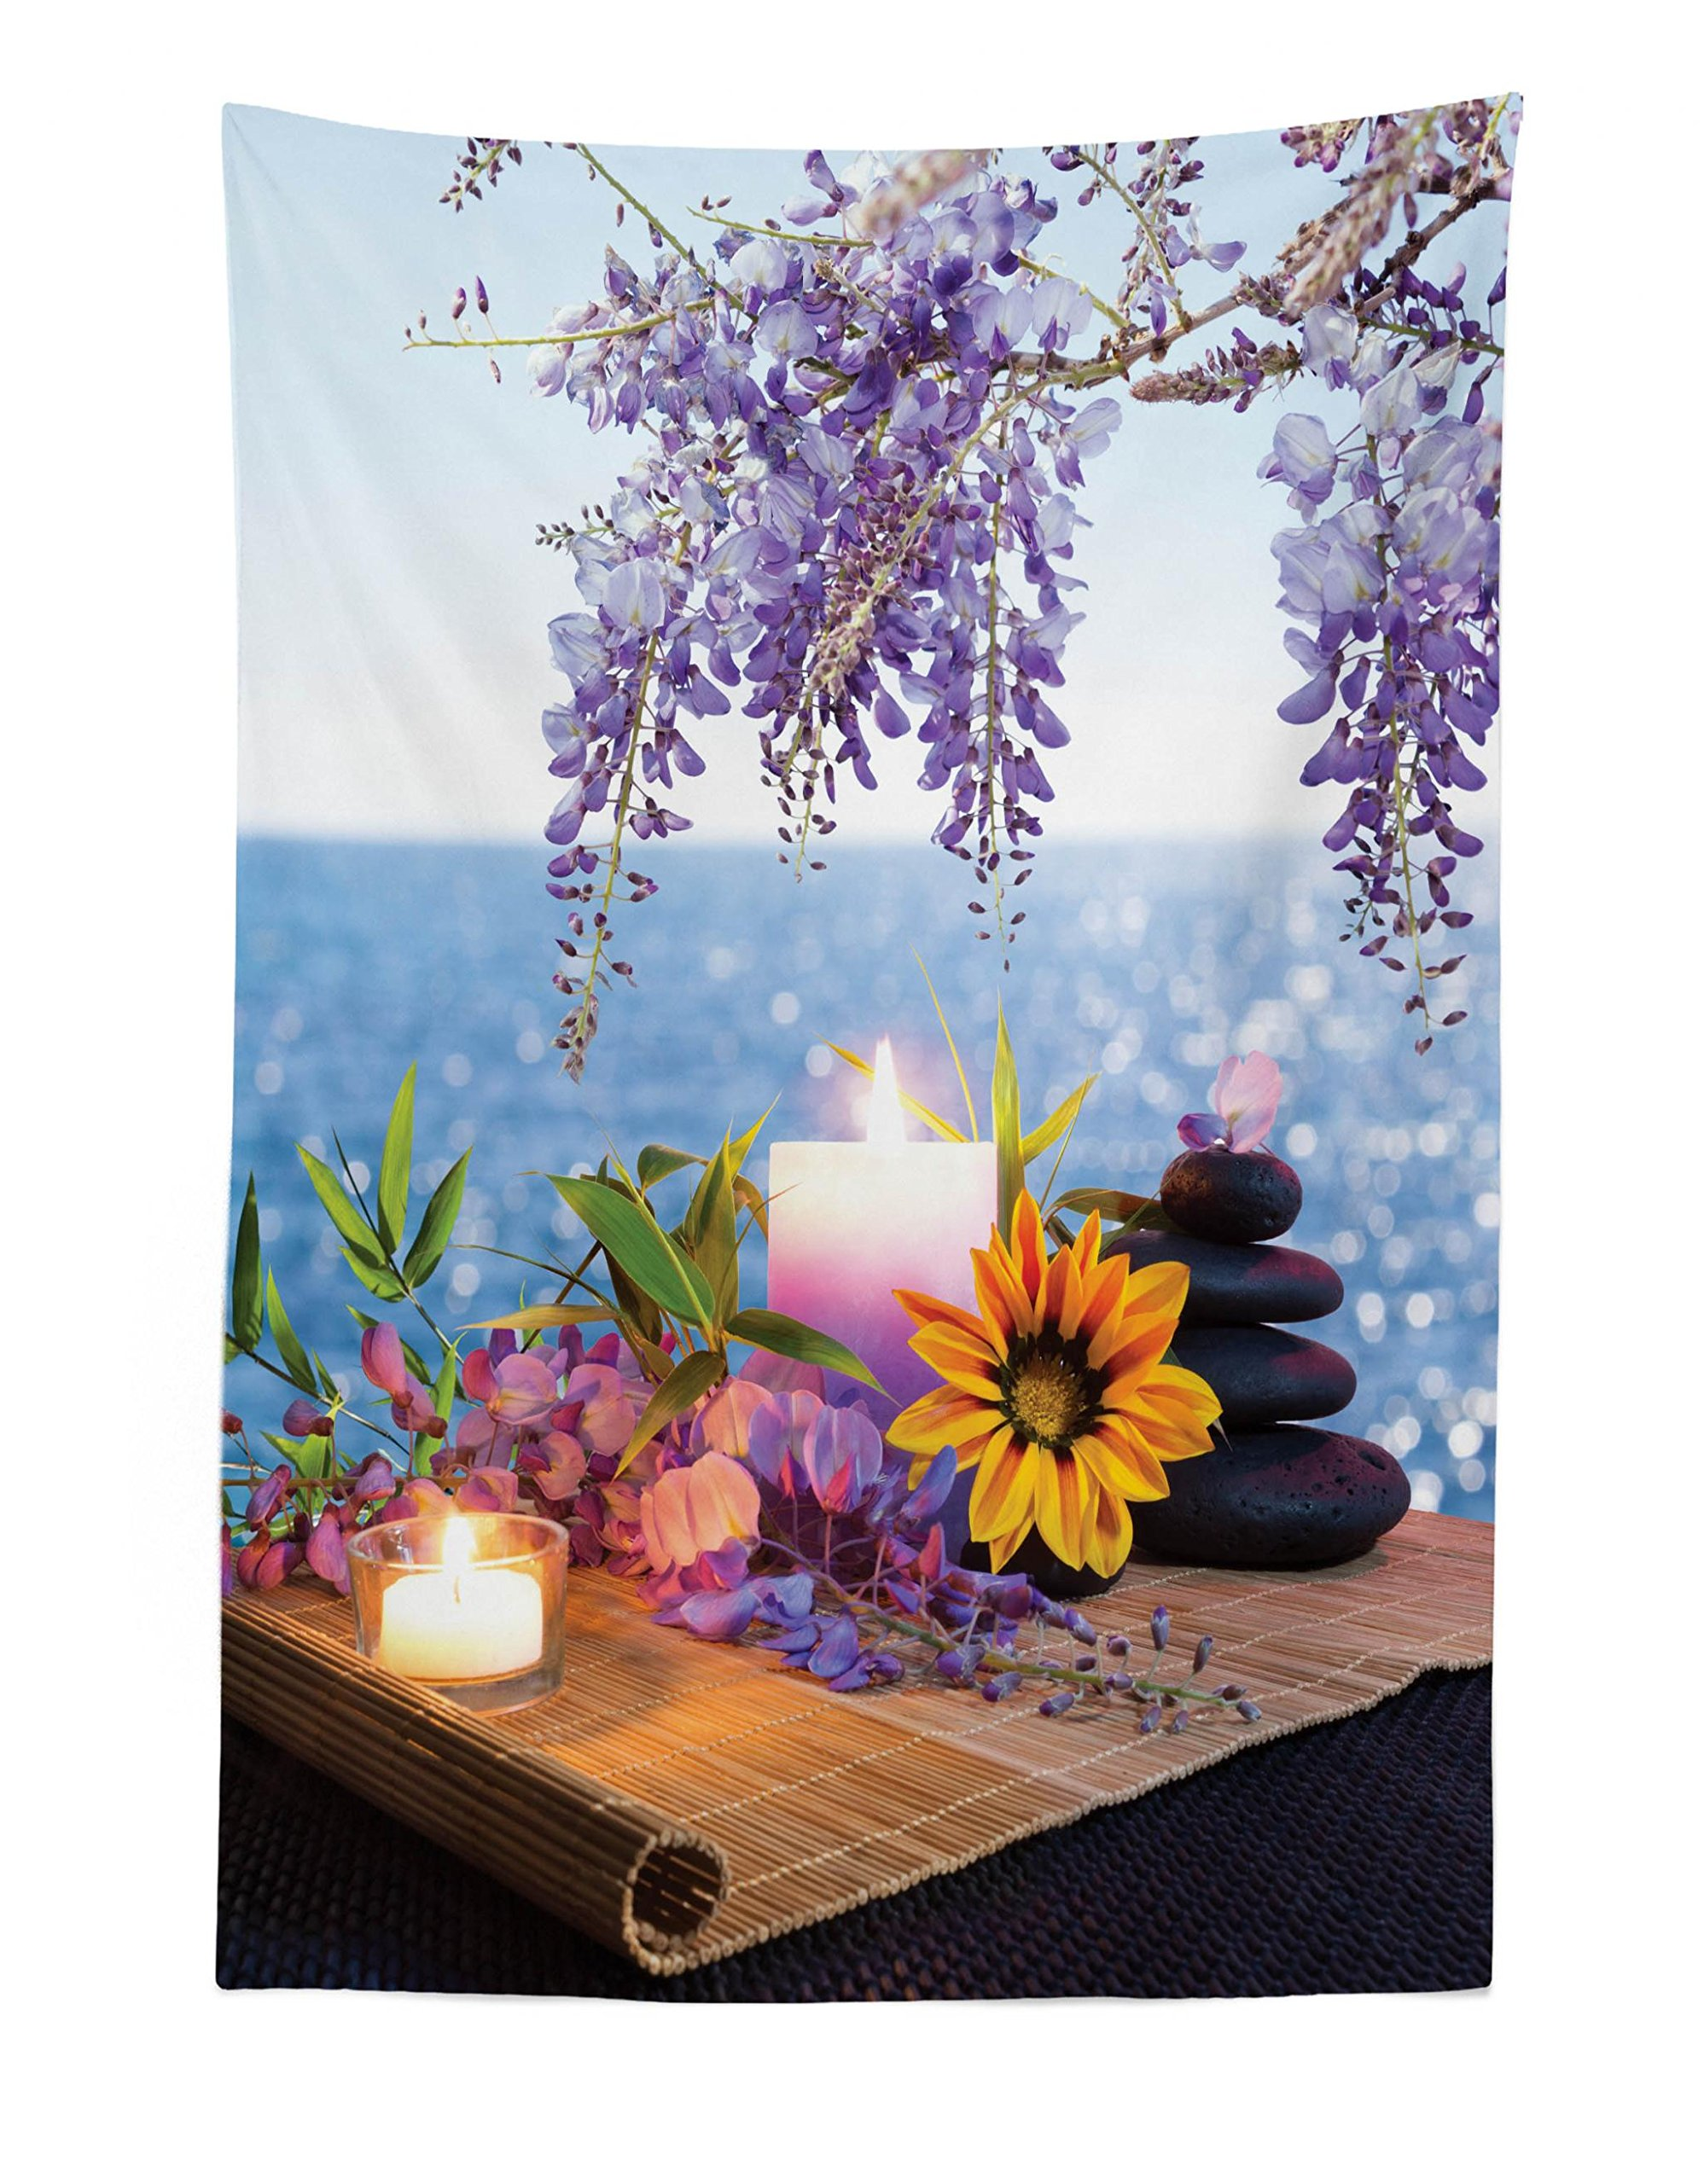 Lunarable Spa Tapestry, Massage Stones with Daisy and Wisteria with The Seabed Foliage Meditation, Fabric Wall Hanging Decor for Bedroom Living Room Dorm, 30 W X 45 L inches, Pale Blue Lavander Green